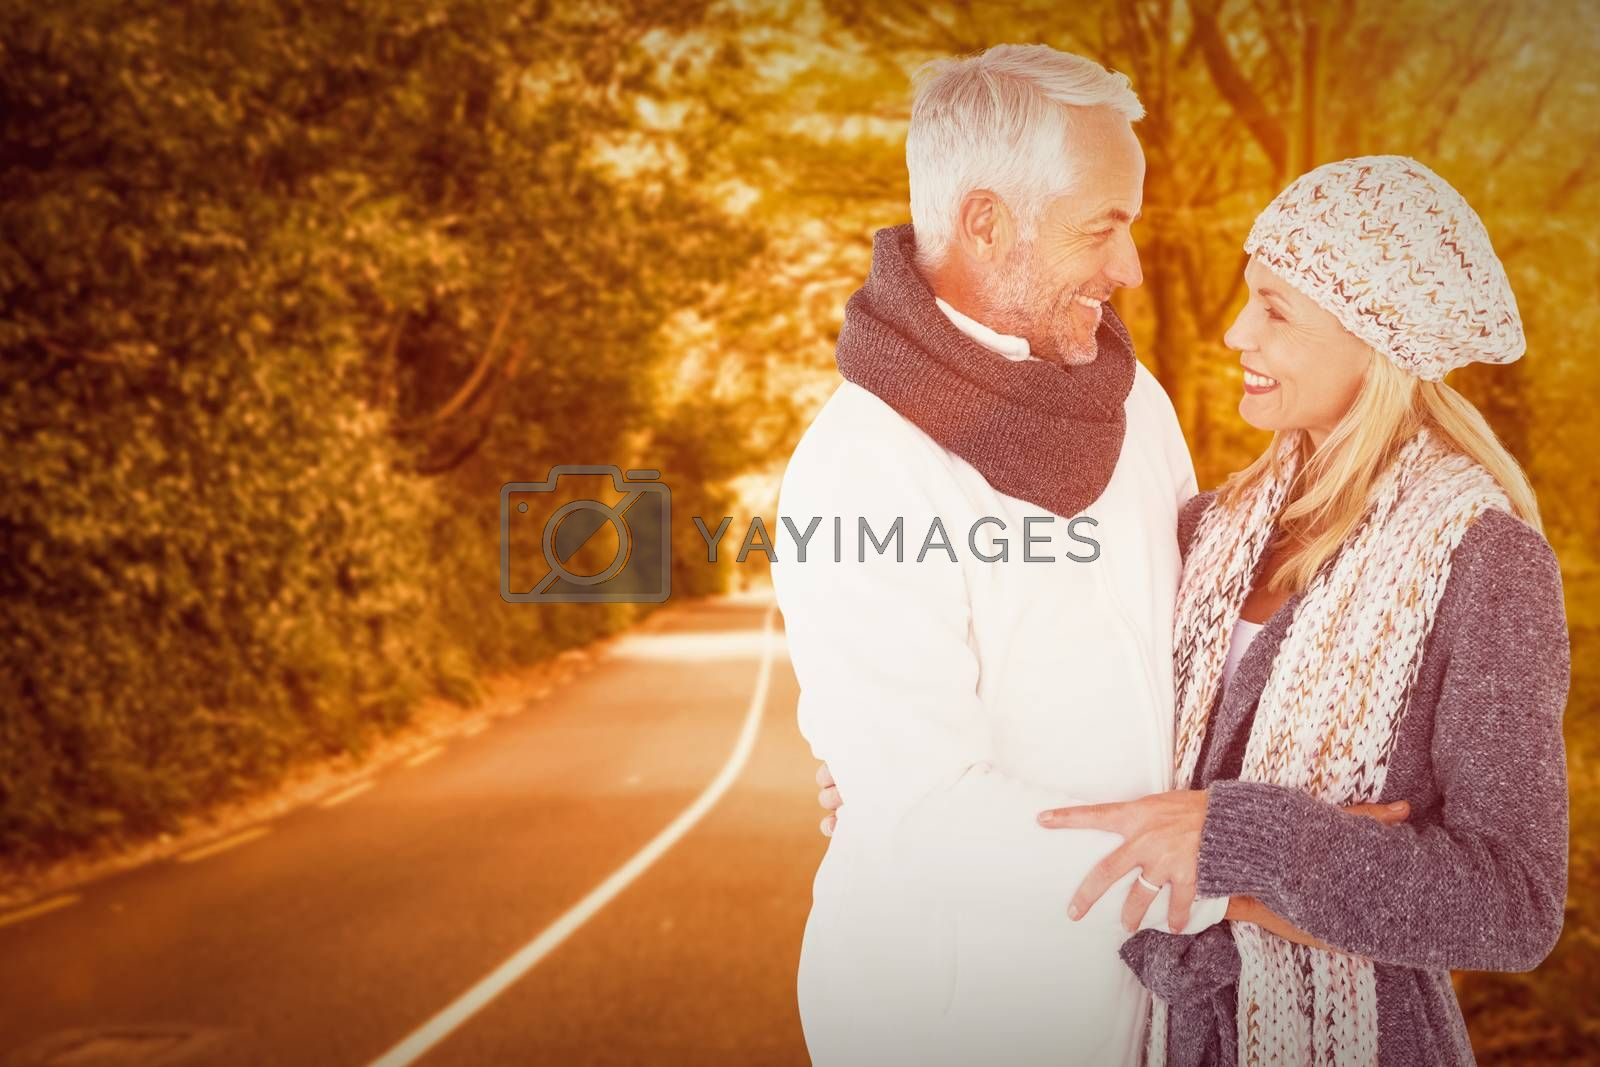 Cute happy couple romancing against country road